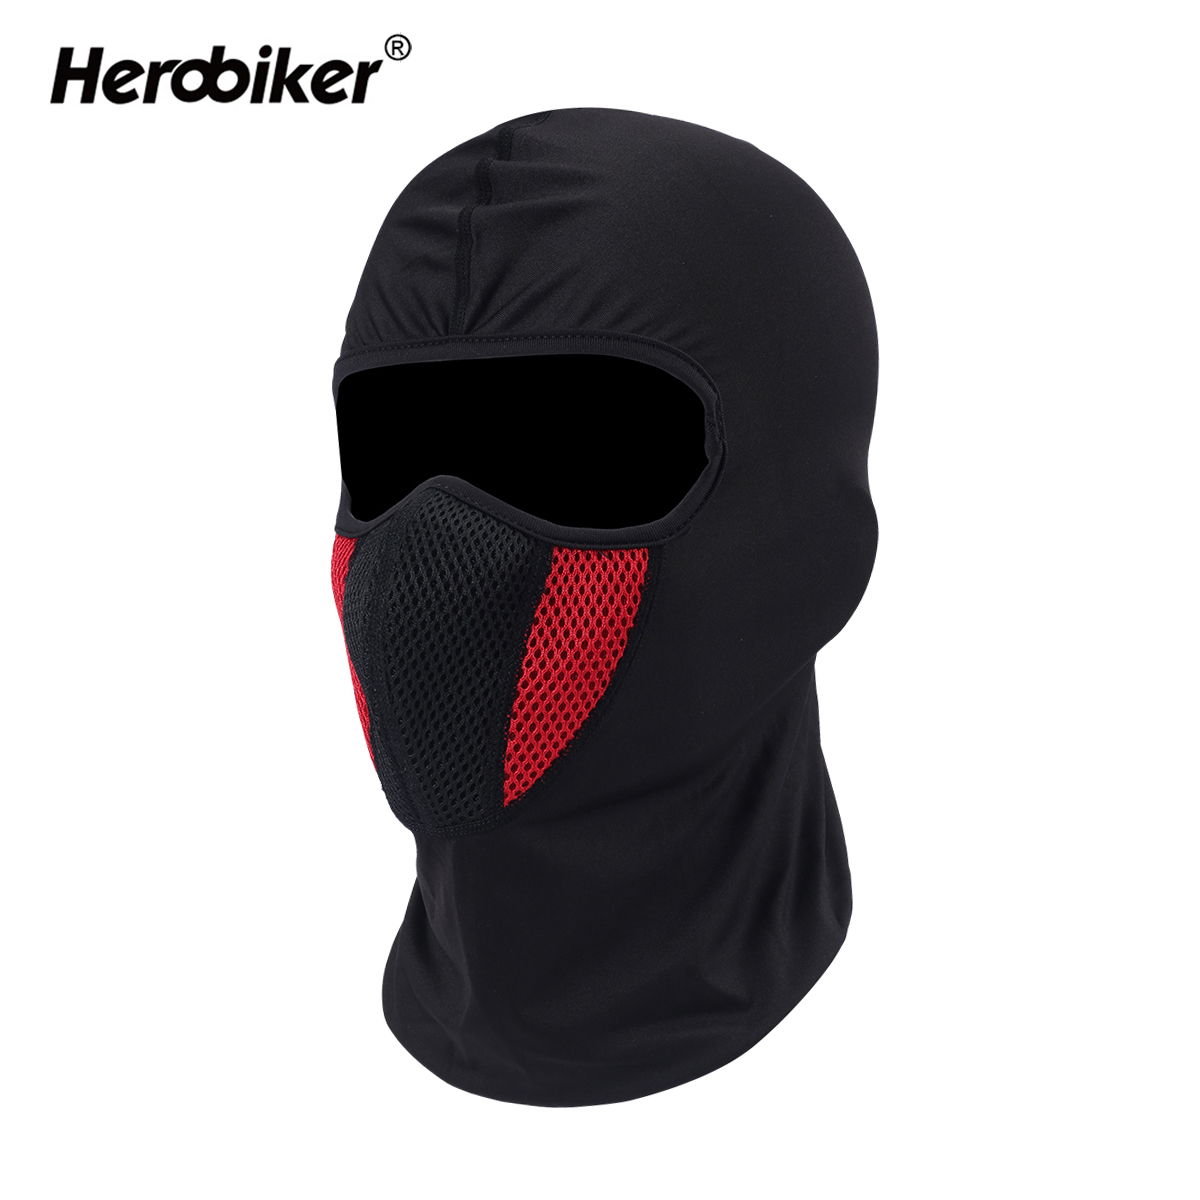 Discount Motorcycle Gear >> HEROBIKER Balaclava Moto Face Mask Motorcycle Tactical ...